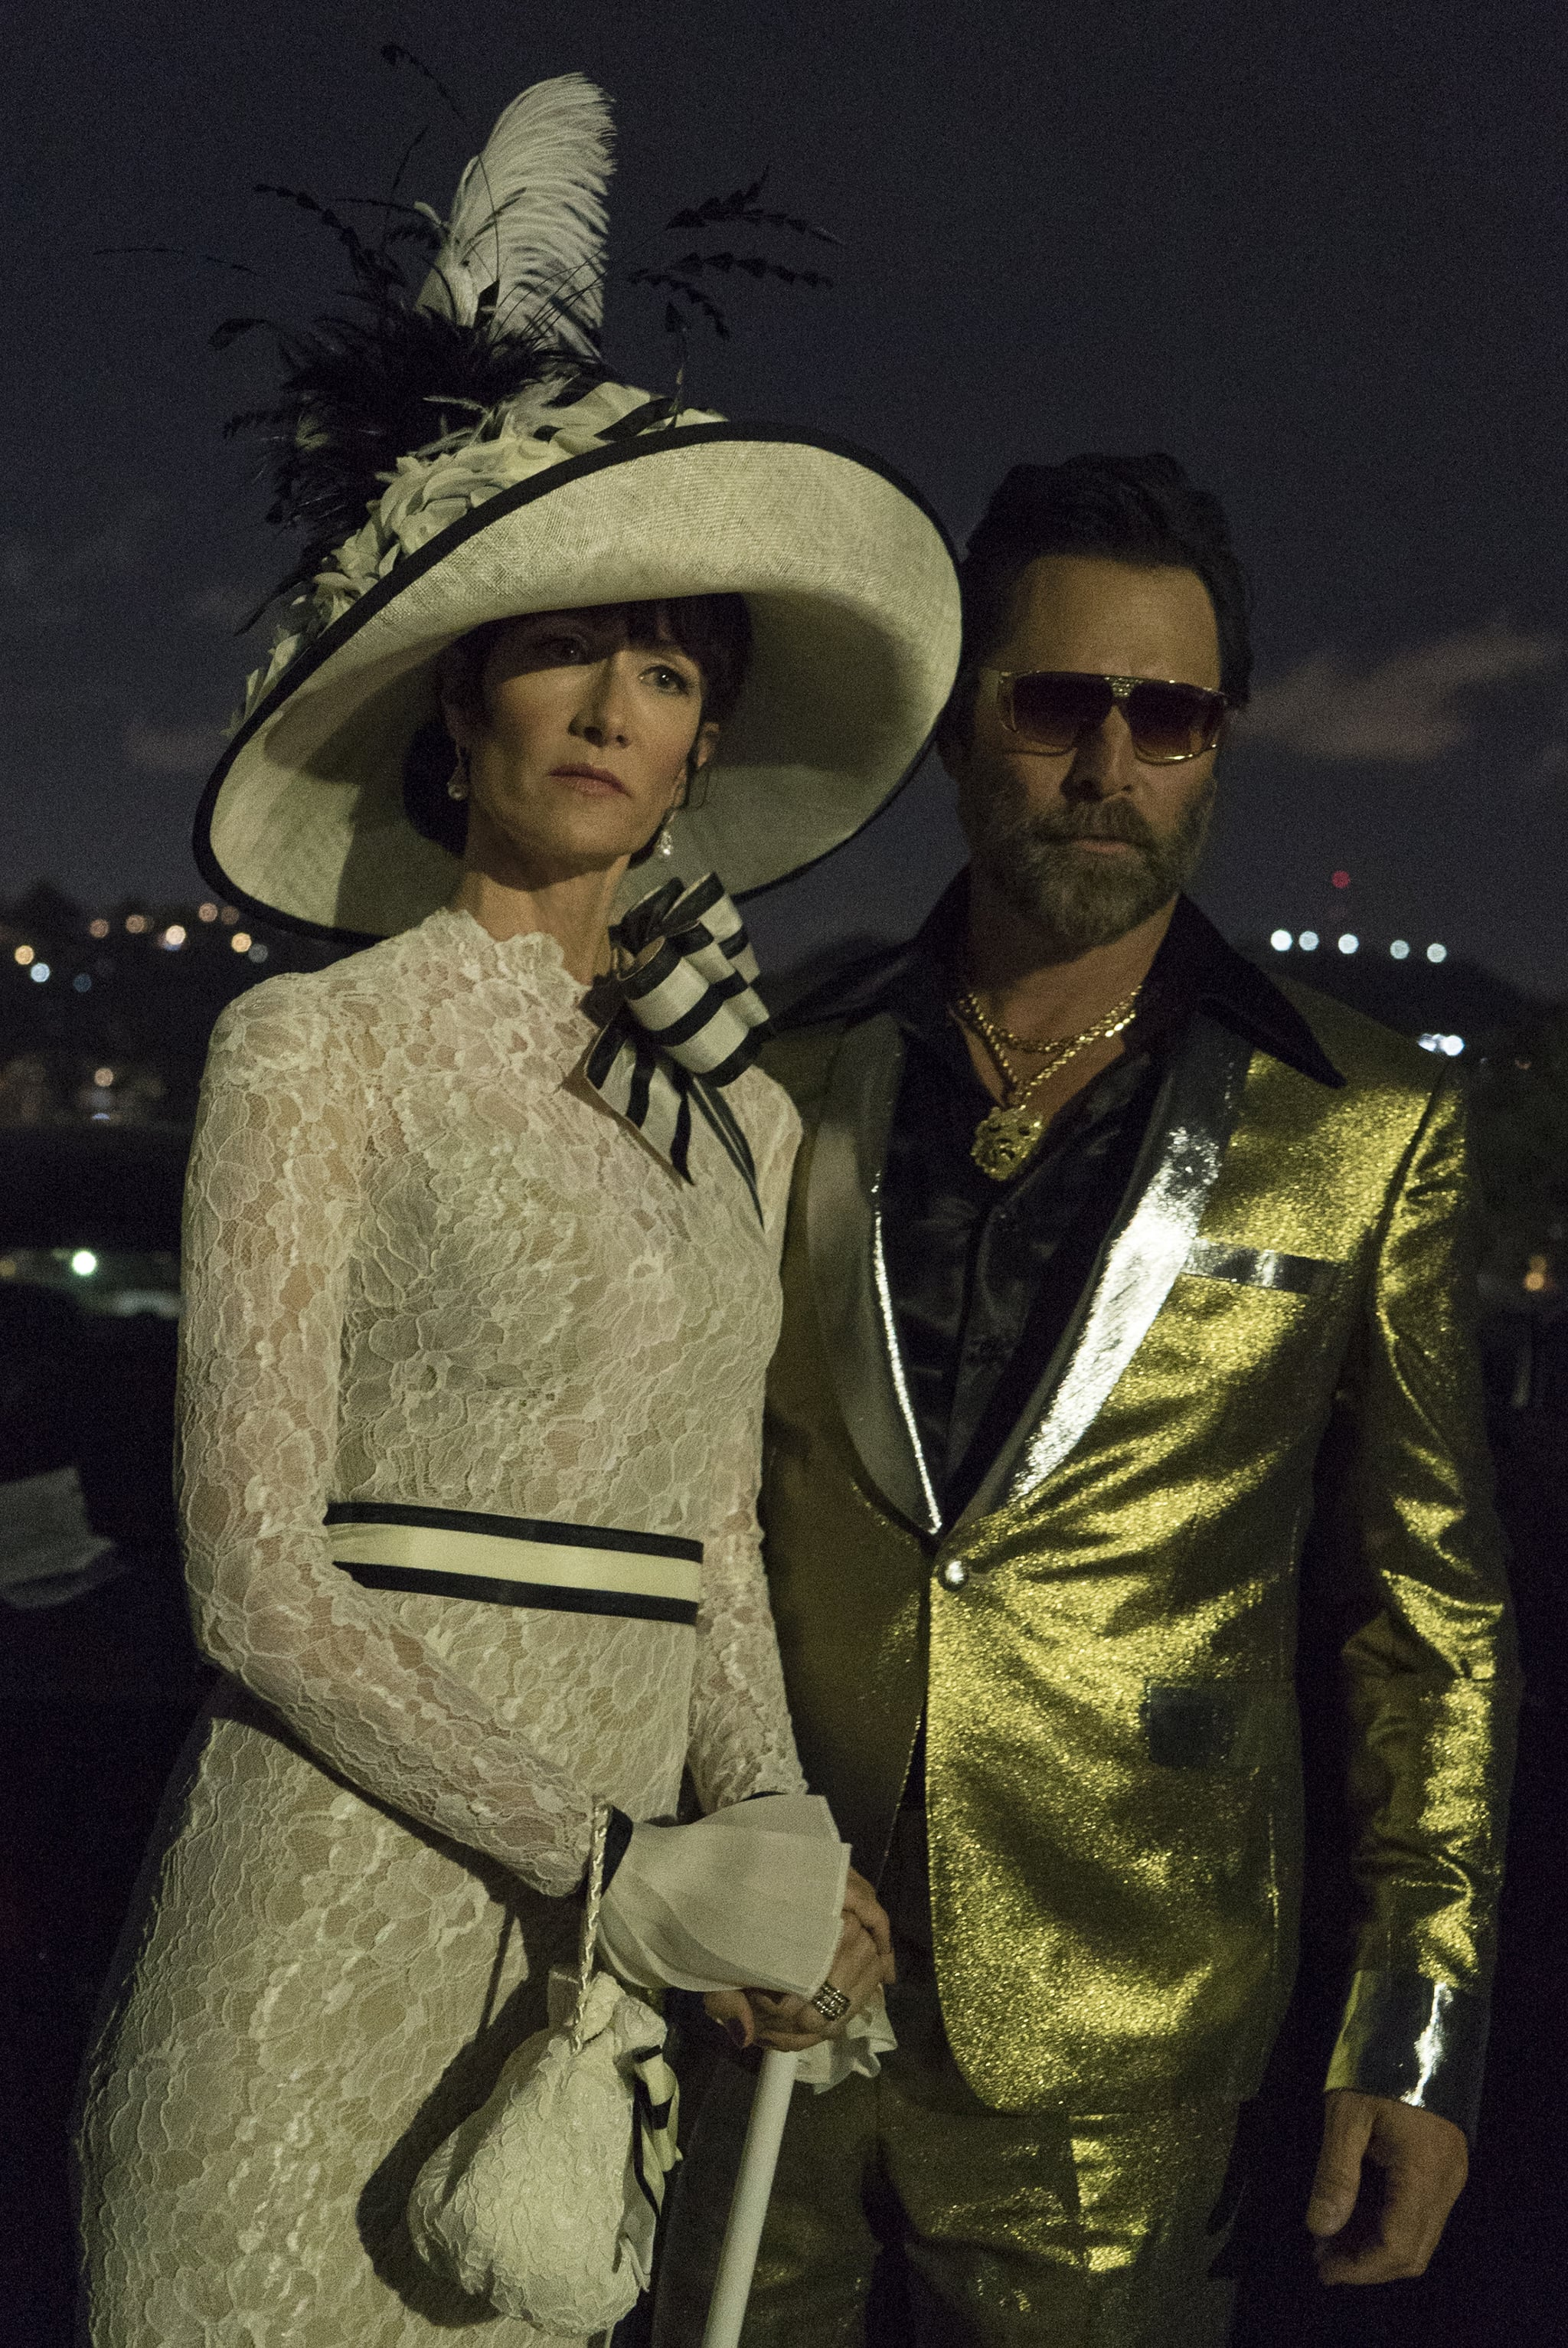 Renata As My Fair Lady Audrey And Gordon As Gold Suit Elvis Go Meta This Halloween With One Of These Big Little Lies Elvis Audrey Costumes Popsugar Entertainment Photo 6